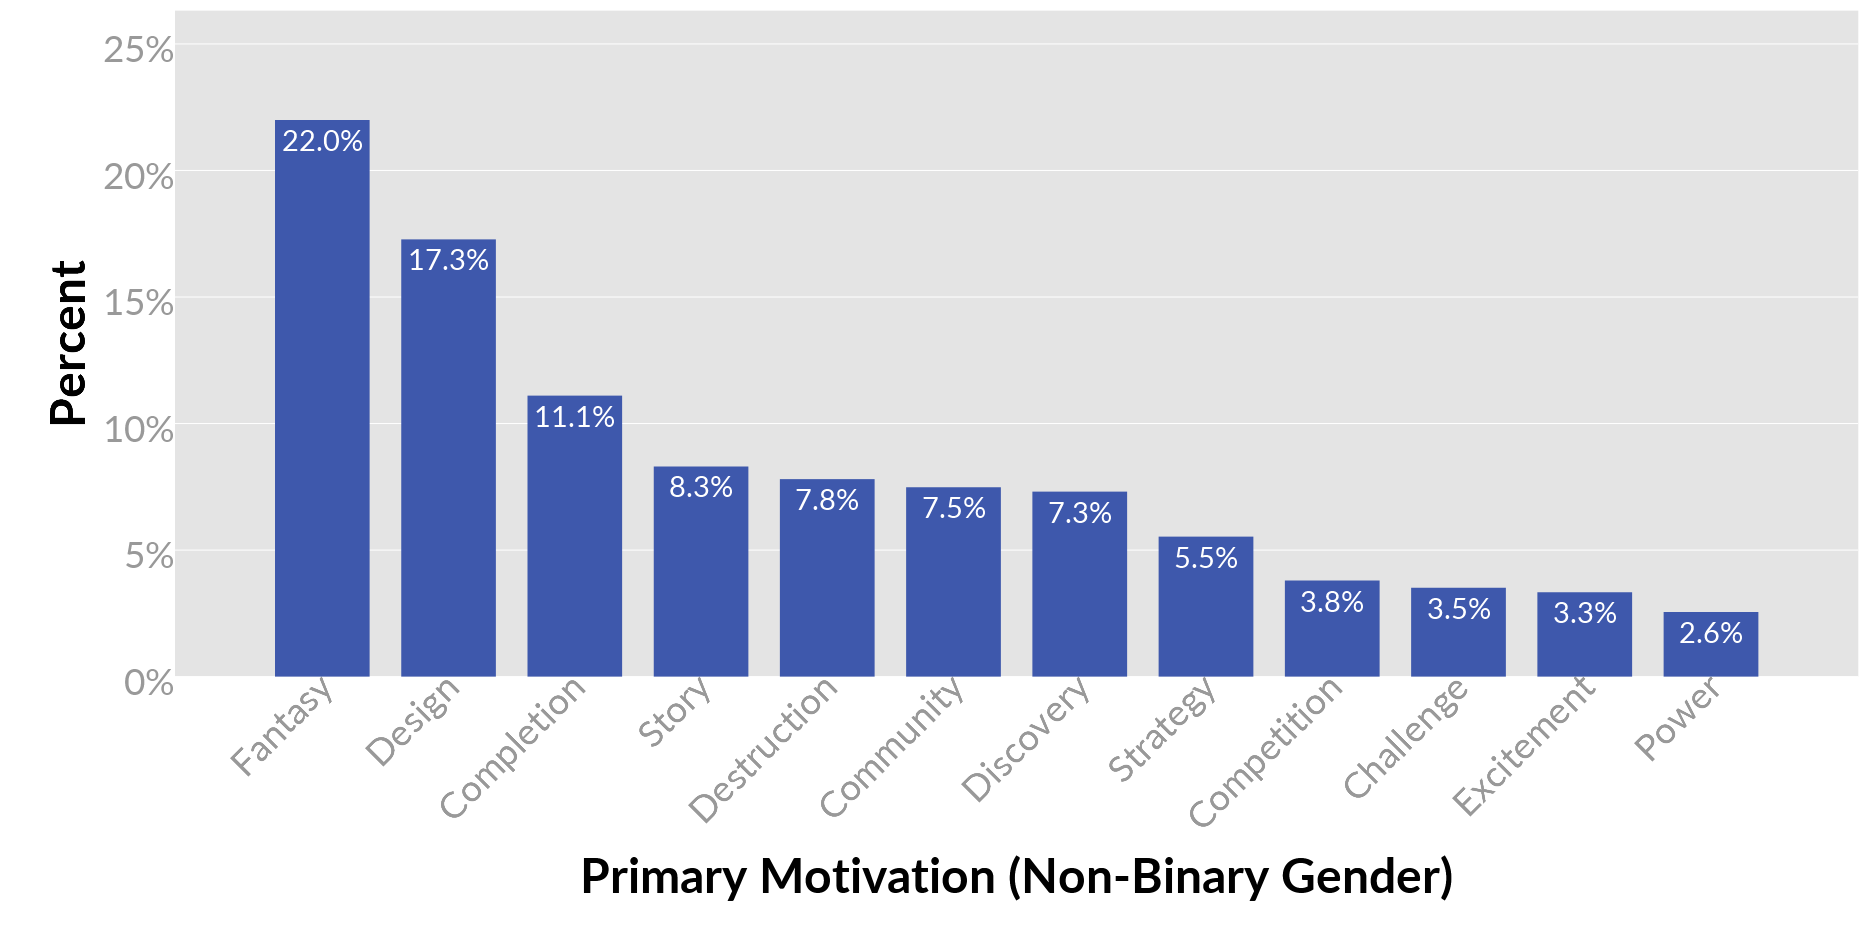 7 Things We Learned About Primary Gaming Motivations From